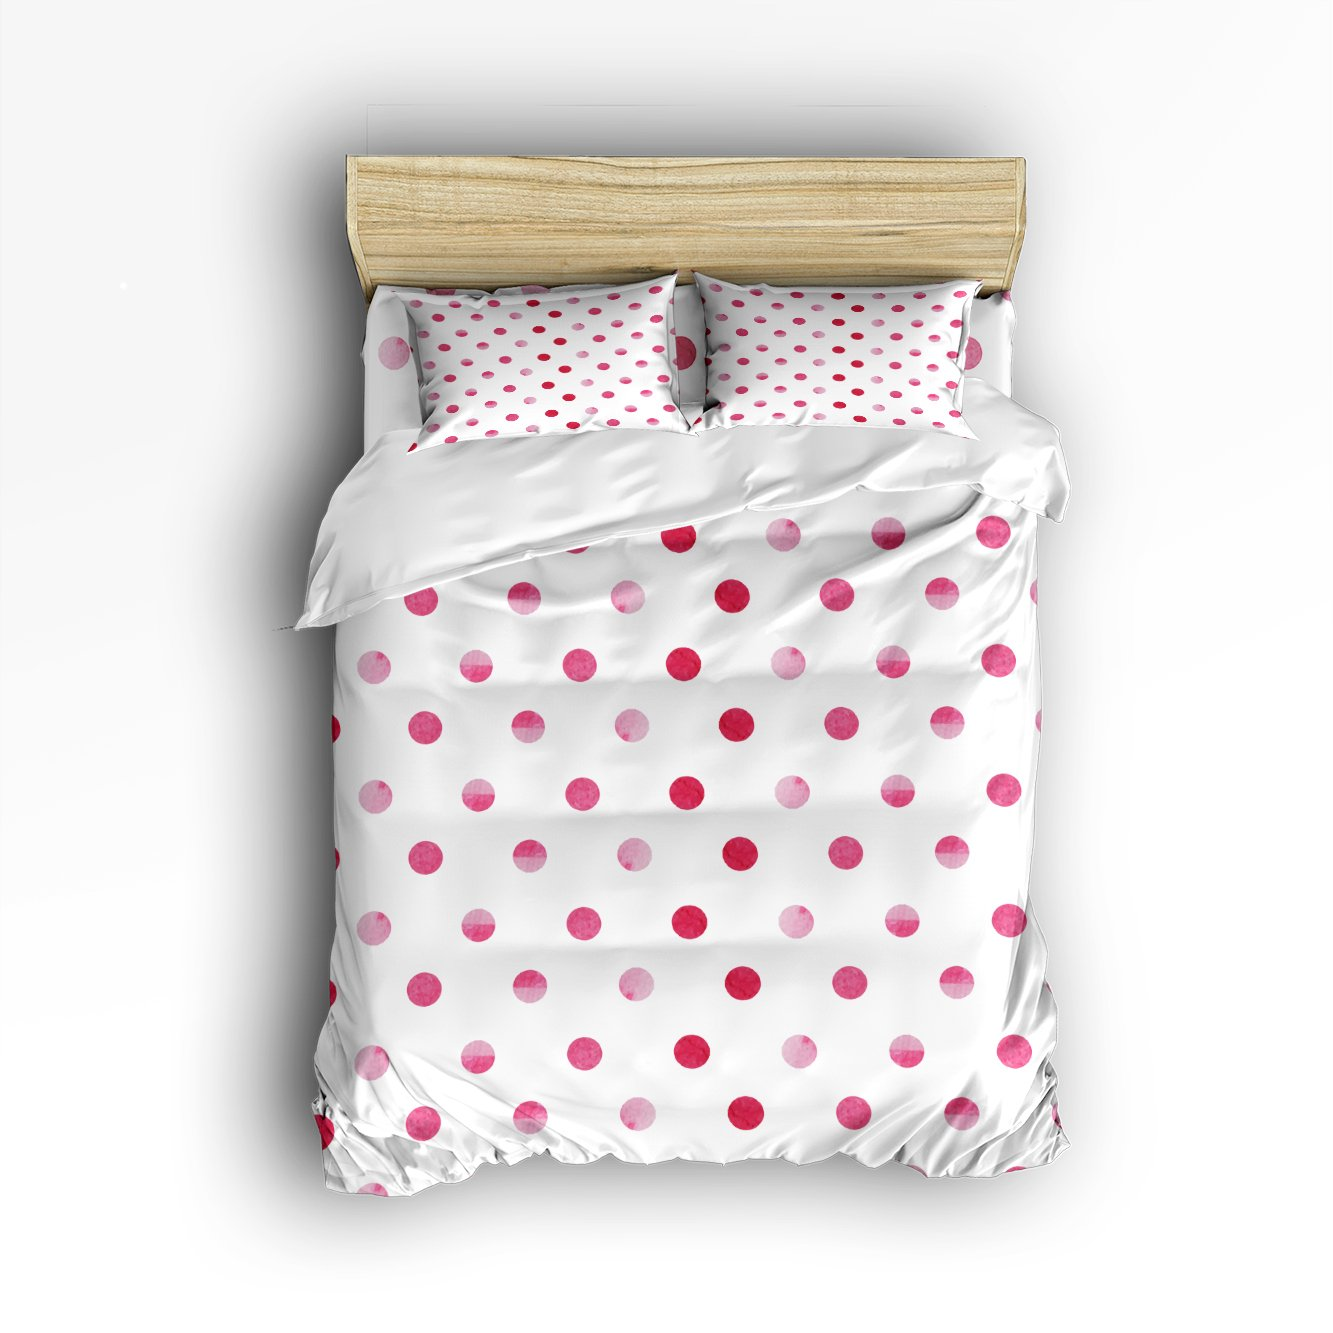 Libaoge 4 Piece Bed Sheets Set, Polka Dot Print, 1 Flat Sheet 1 Duvet Cover and 2 Pillow Cases by Libaoge